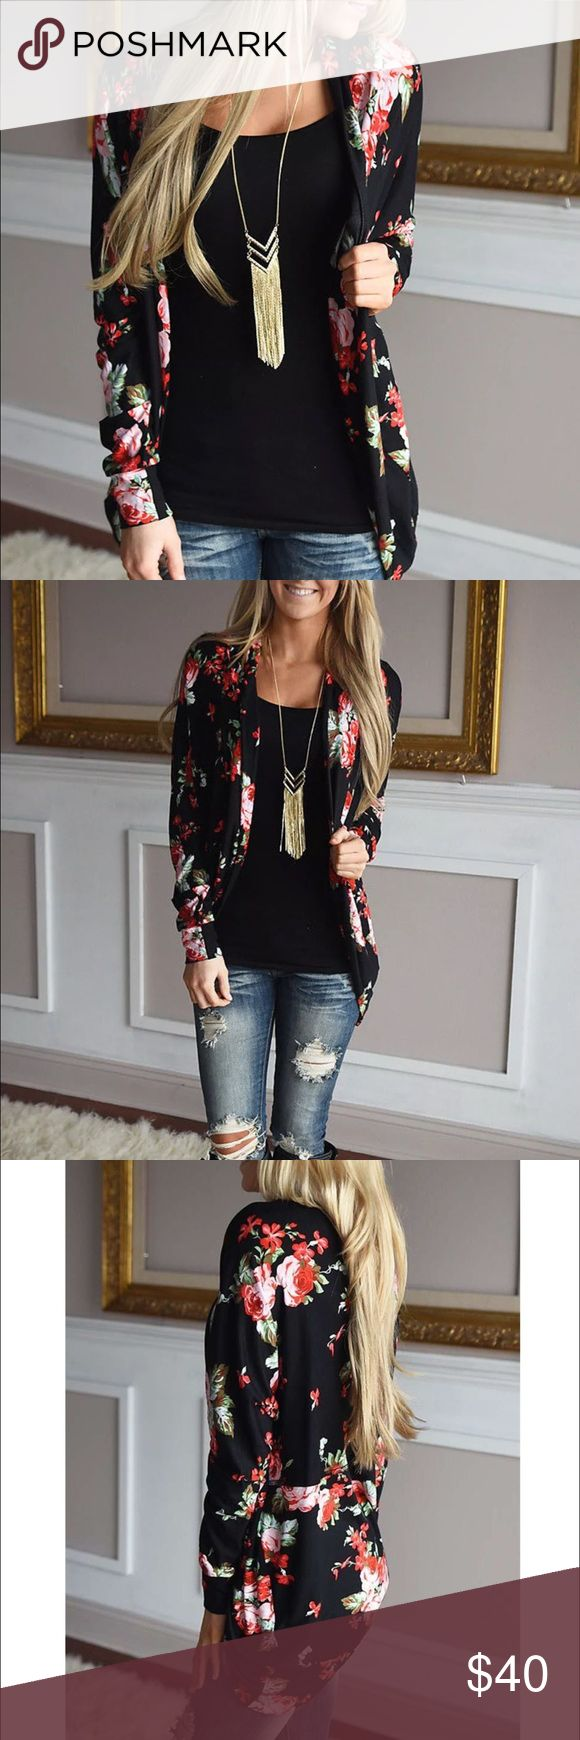 {The Lauren} Holiday Floral Cardigan {The Lauren} Floral Cardigan ❤️ Beautiful festive Black + red floral print. Soft + Cozy Poly blendAvailable sizes: Medium (4-6, will fit most US Smalls & Mediums- listed Small & Medium for search purposes), Large (6-8) and XL (8-10)It is best to size up as these run smaller. Please refer to sizing chart before buyingI am happy to help!   Tops